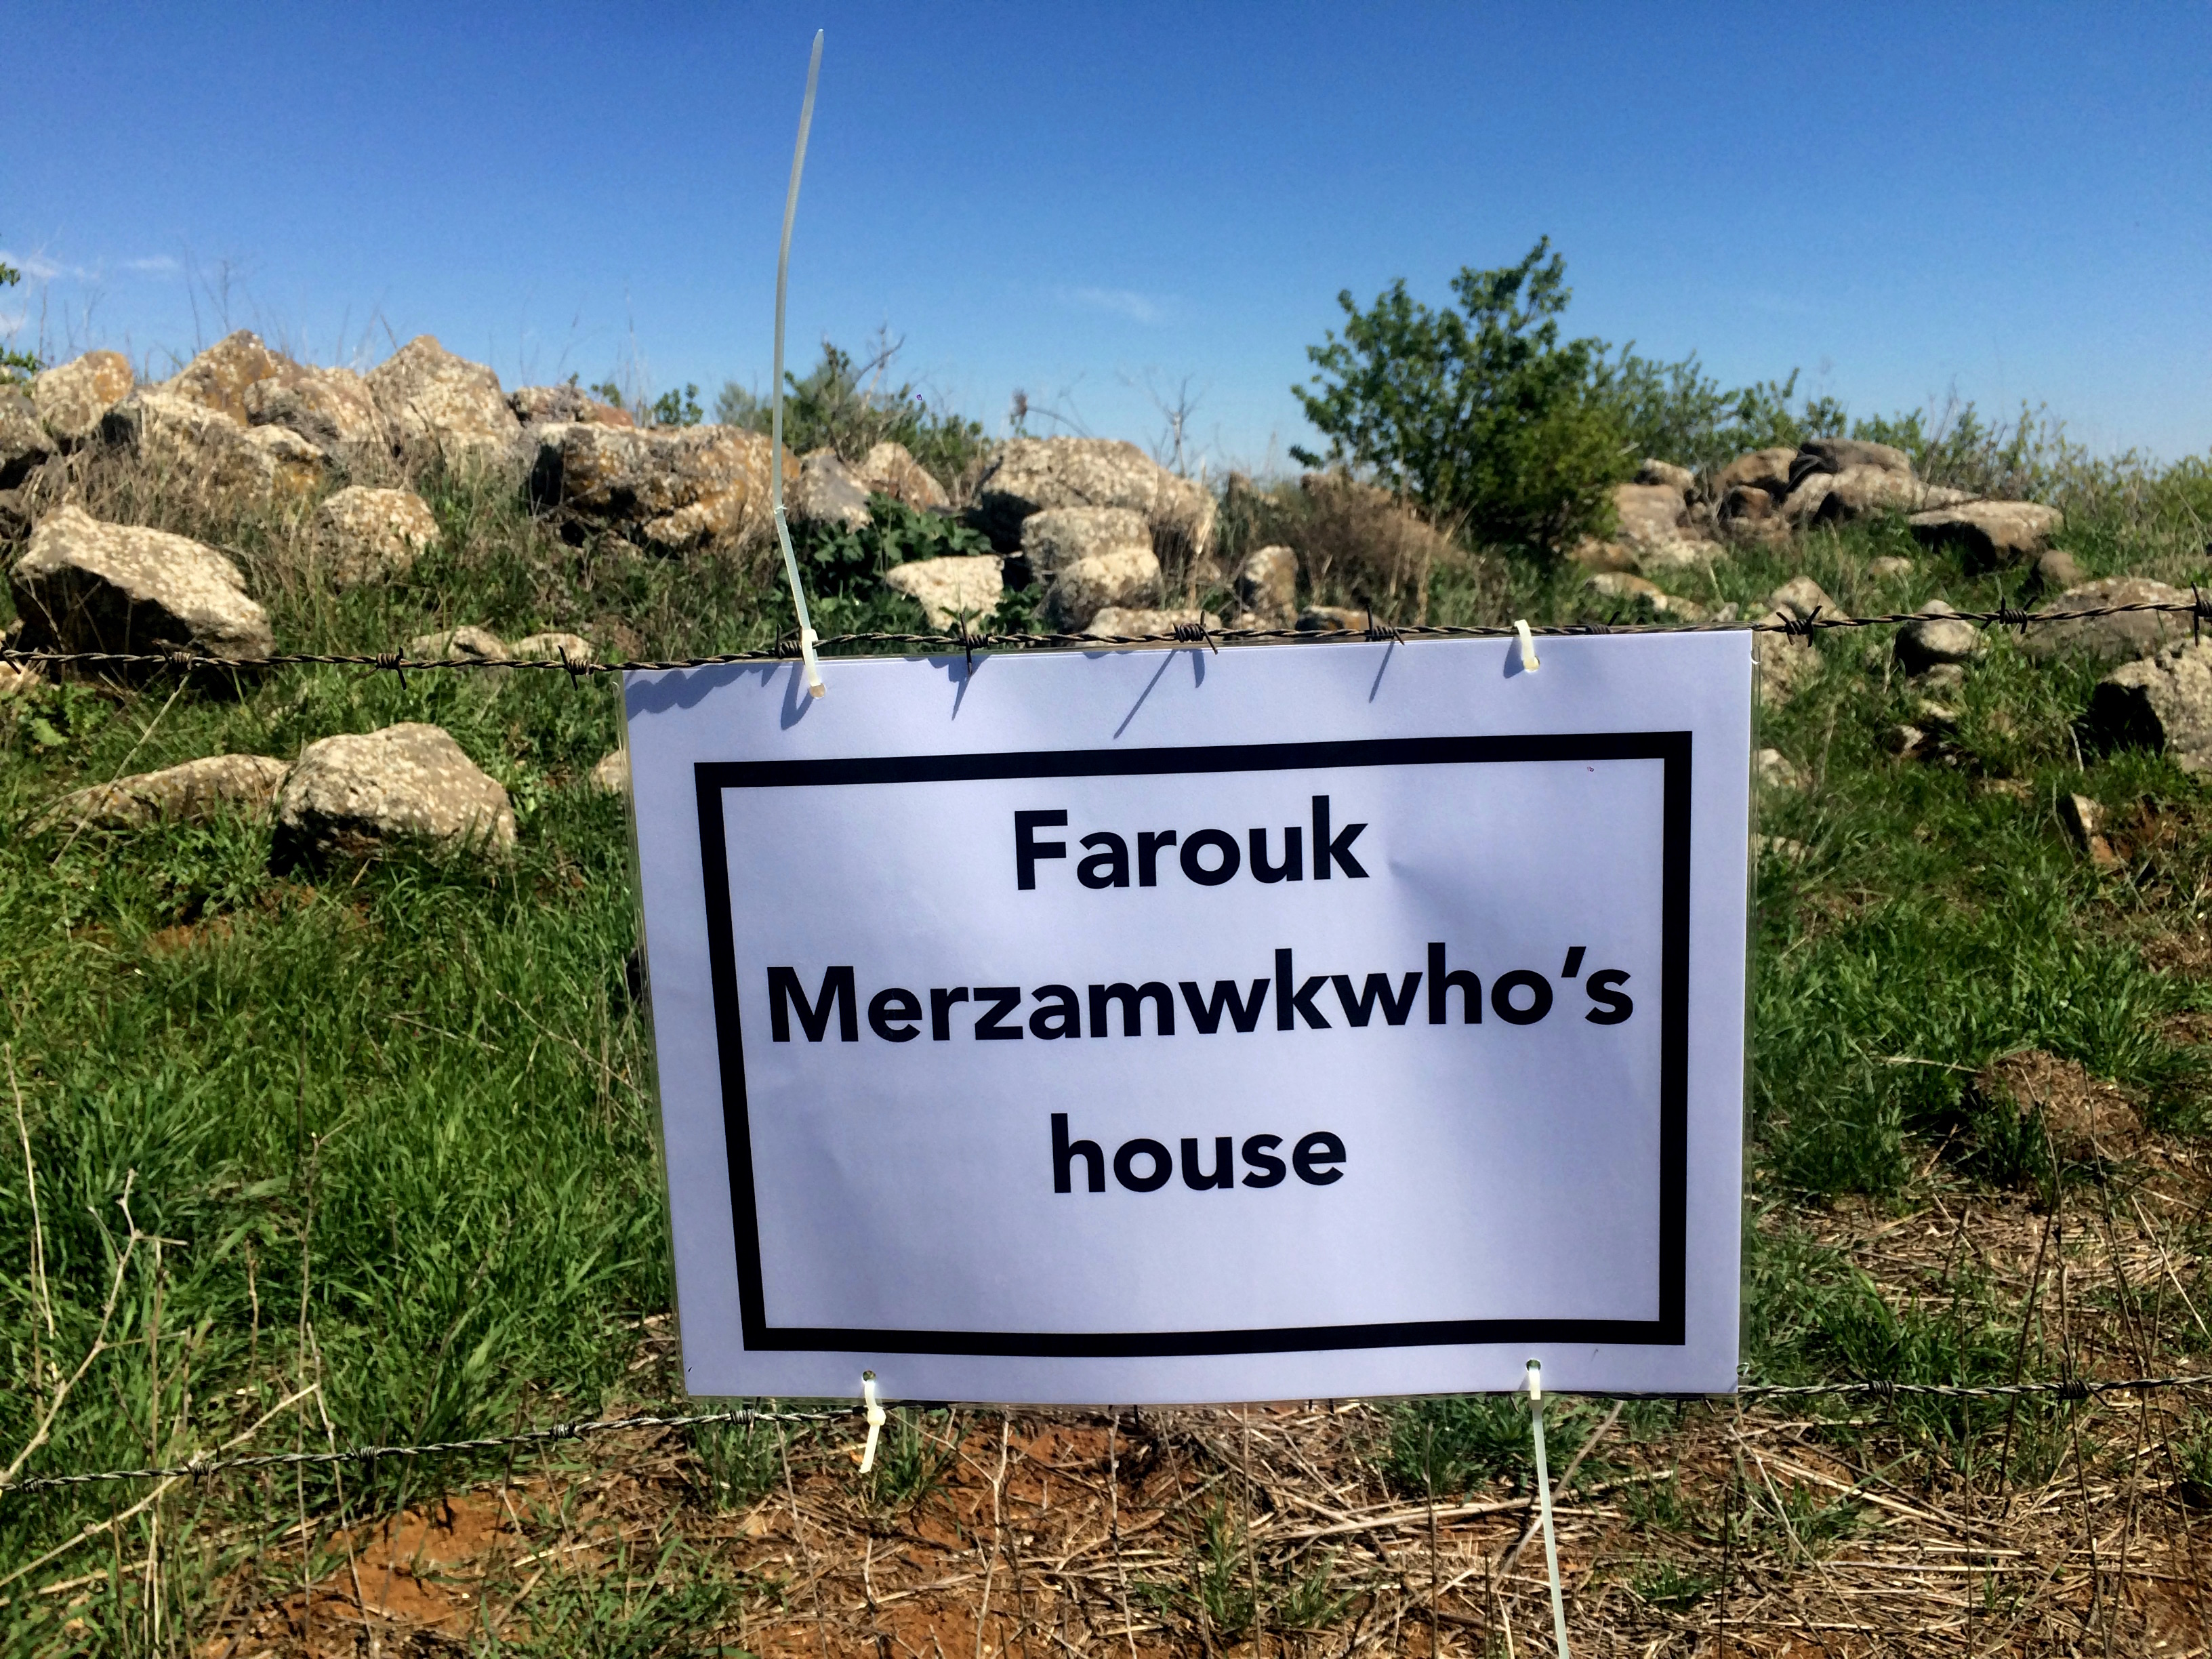 Signing Farouk's house